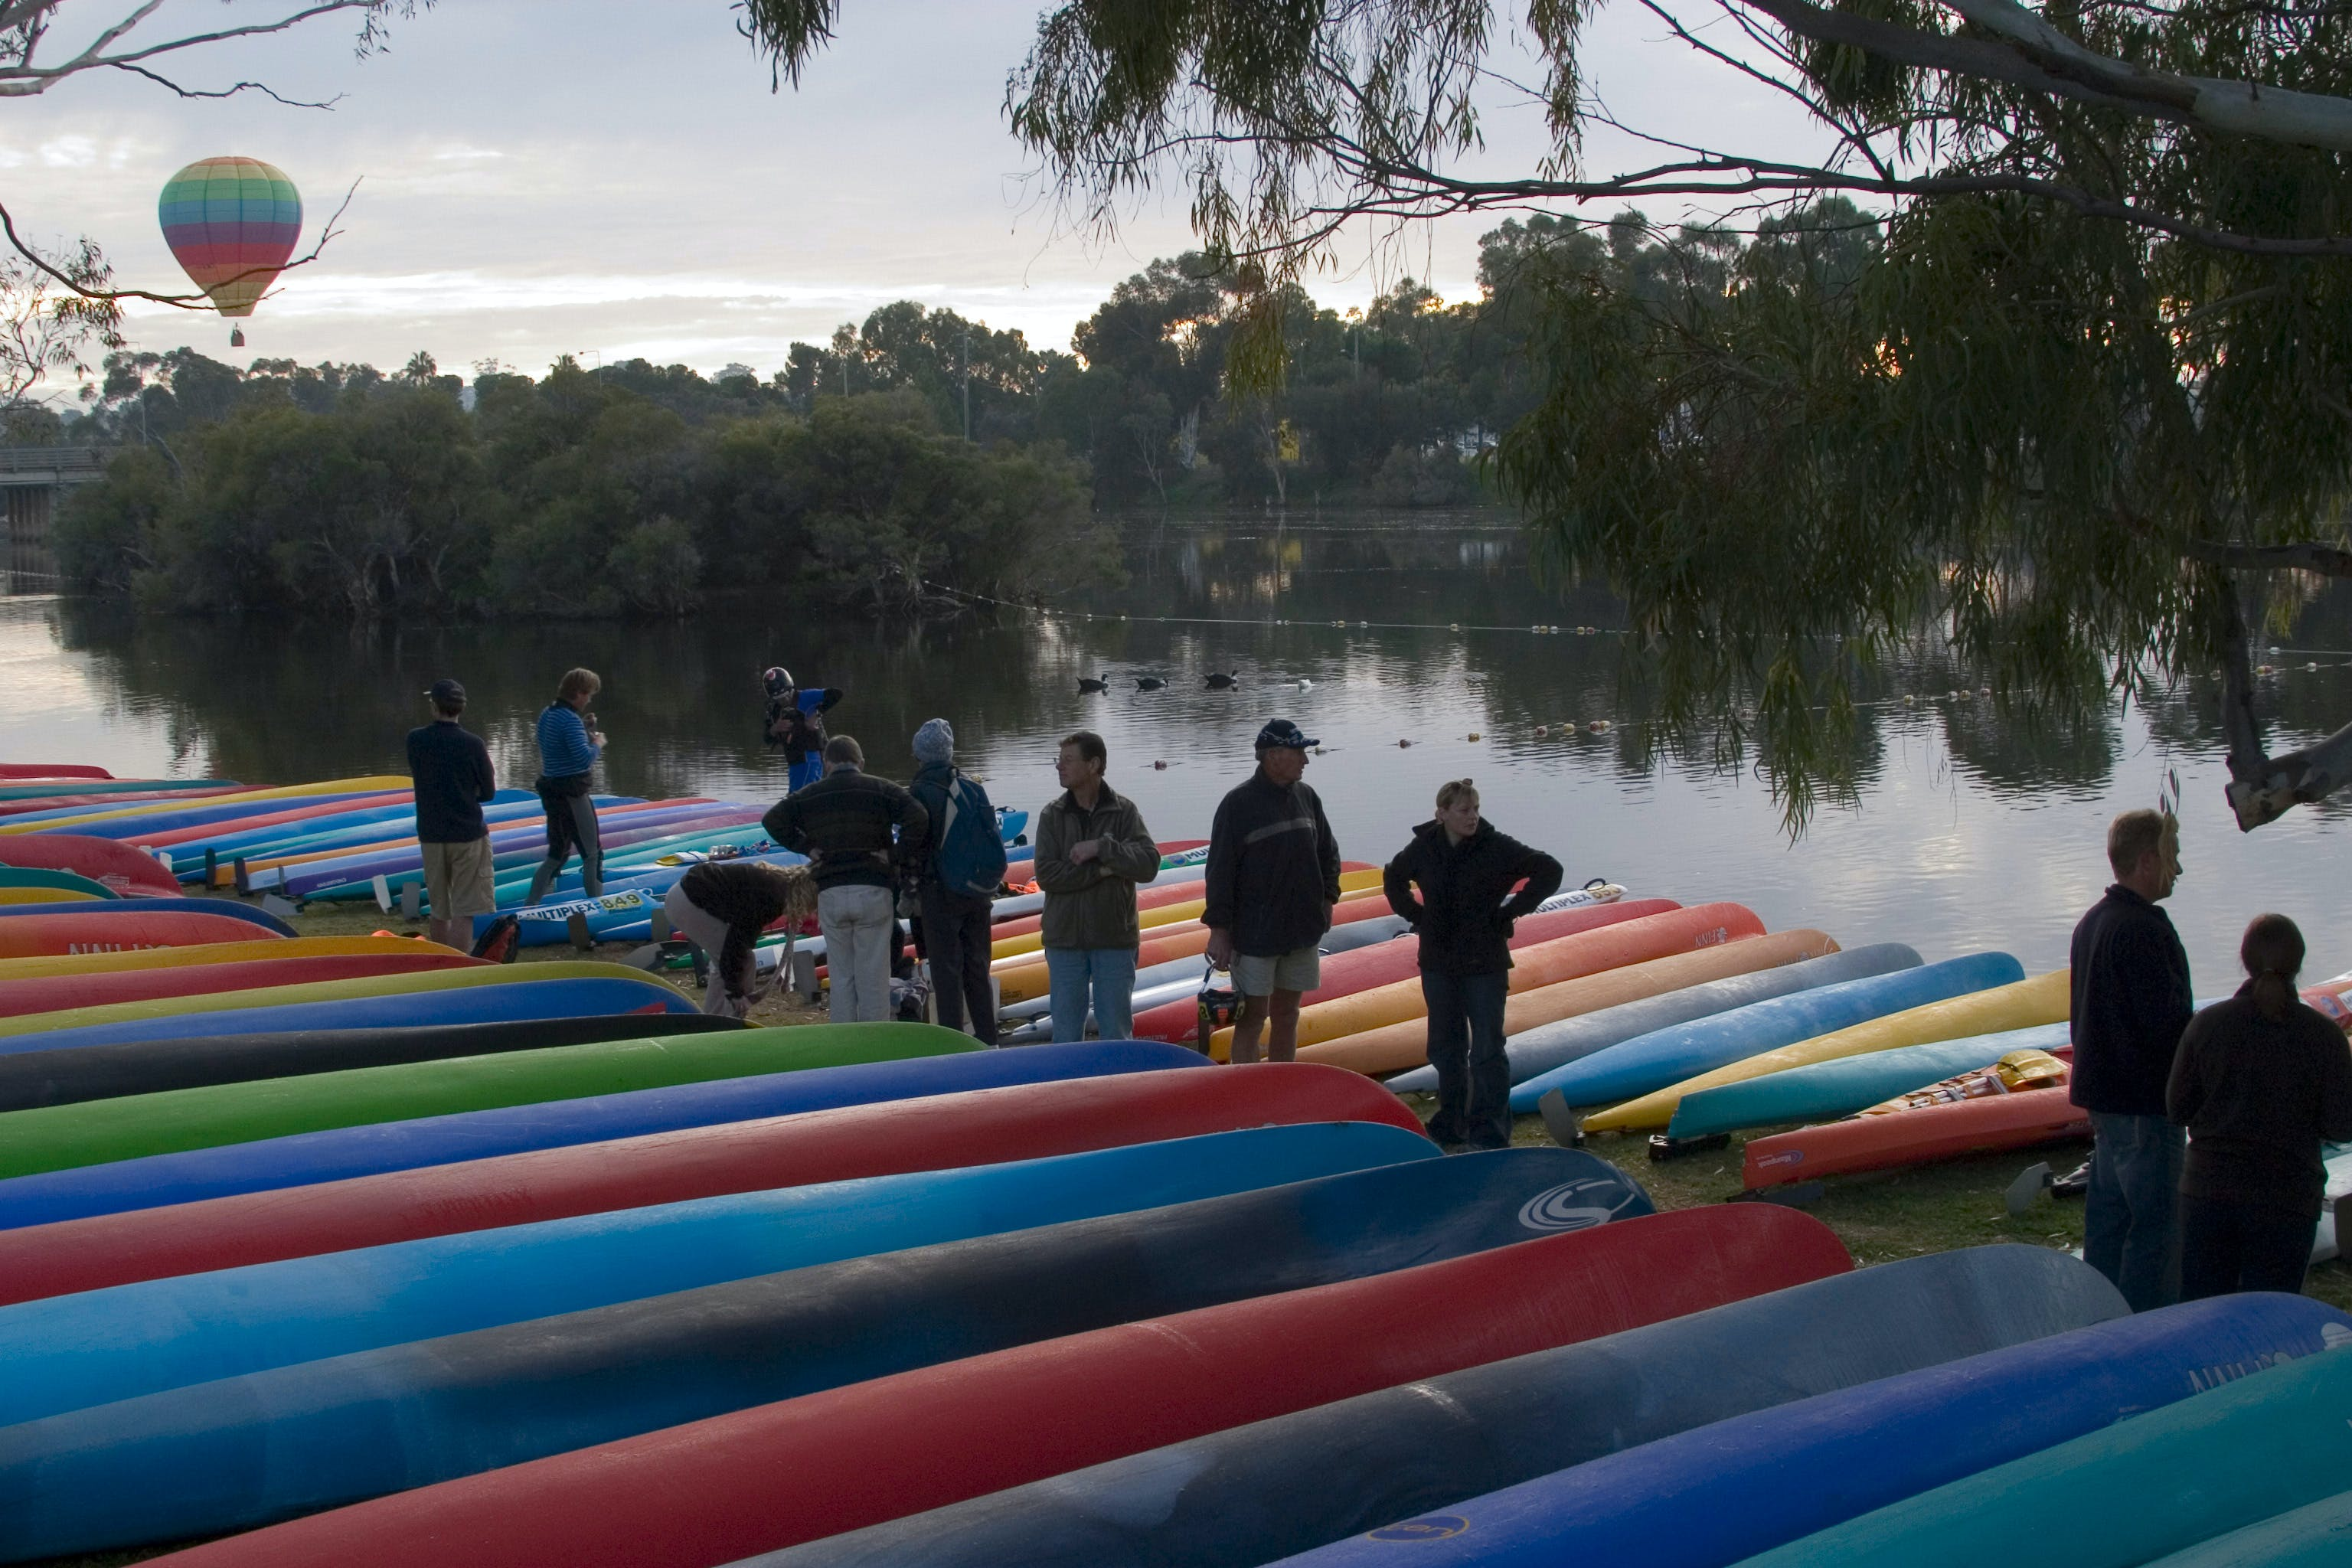 Avon Descent - Sunshine Coast Tourism